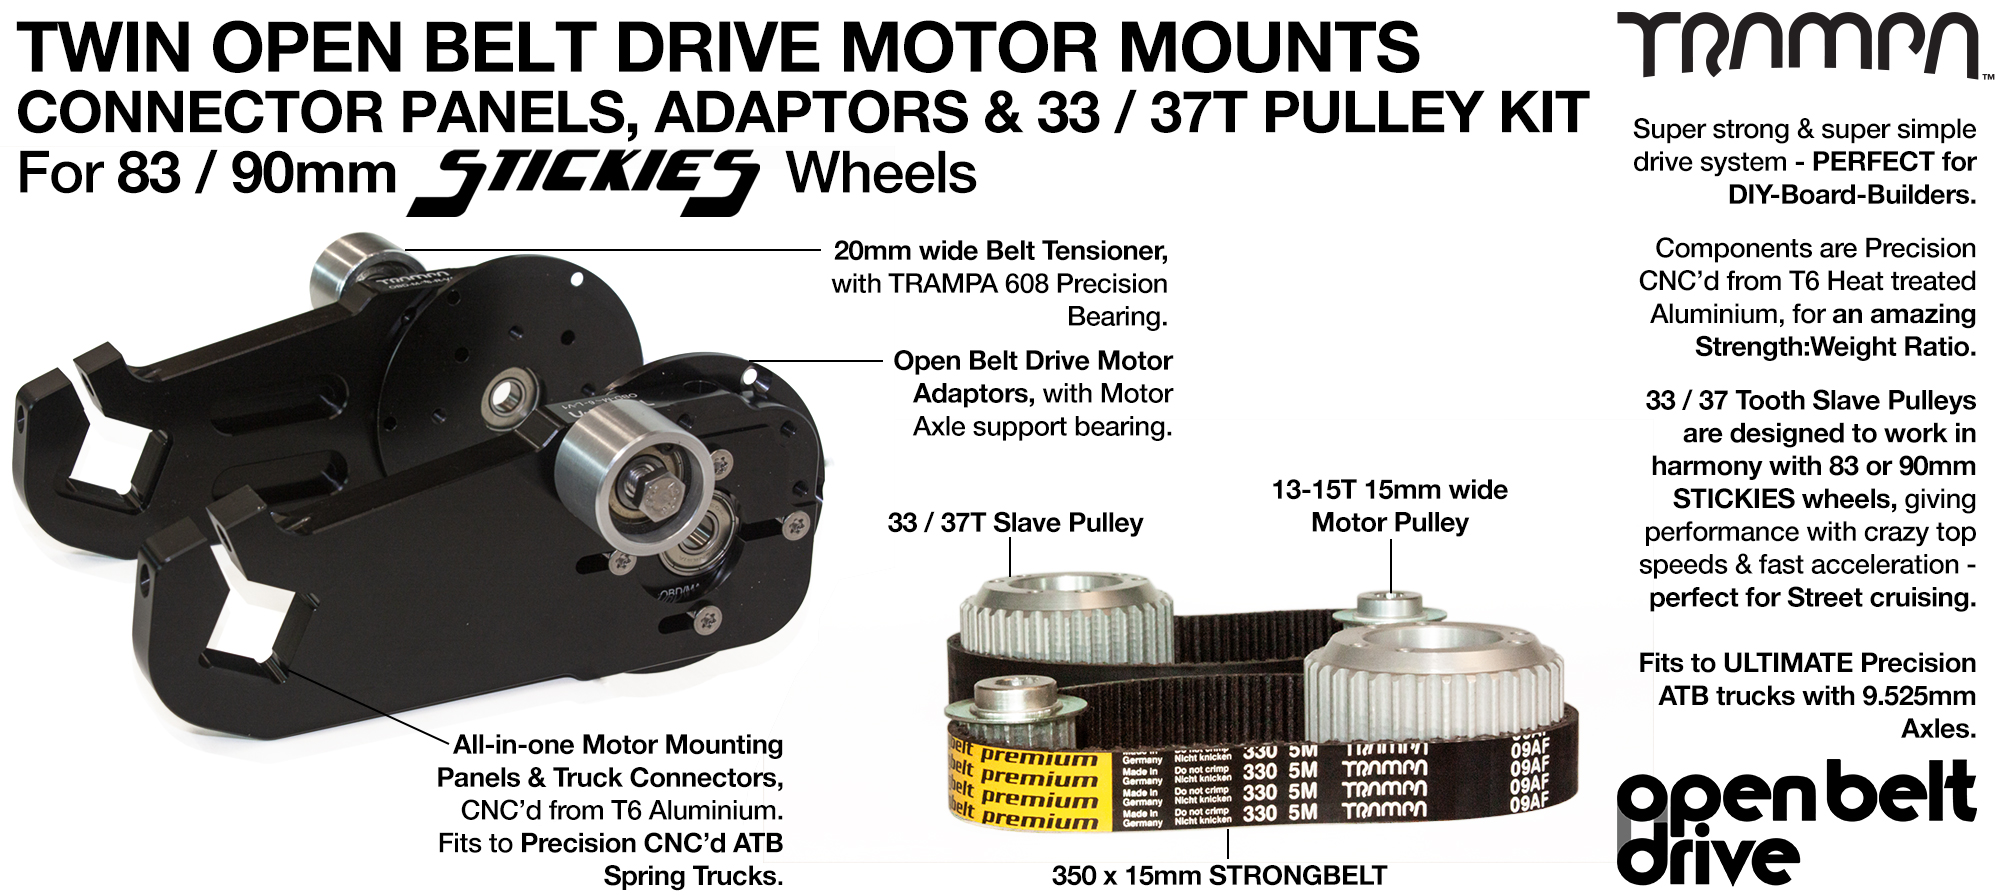 66T OBD Motor Mount & 33 / 37 tooth Pulley - TWIN